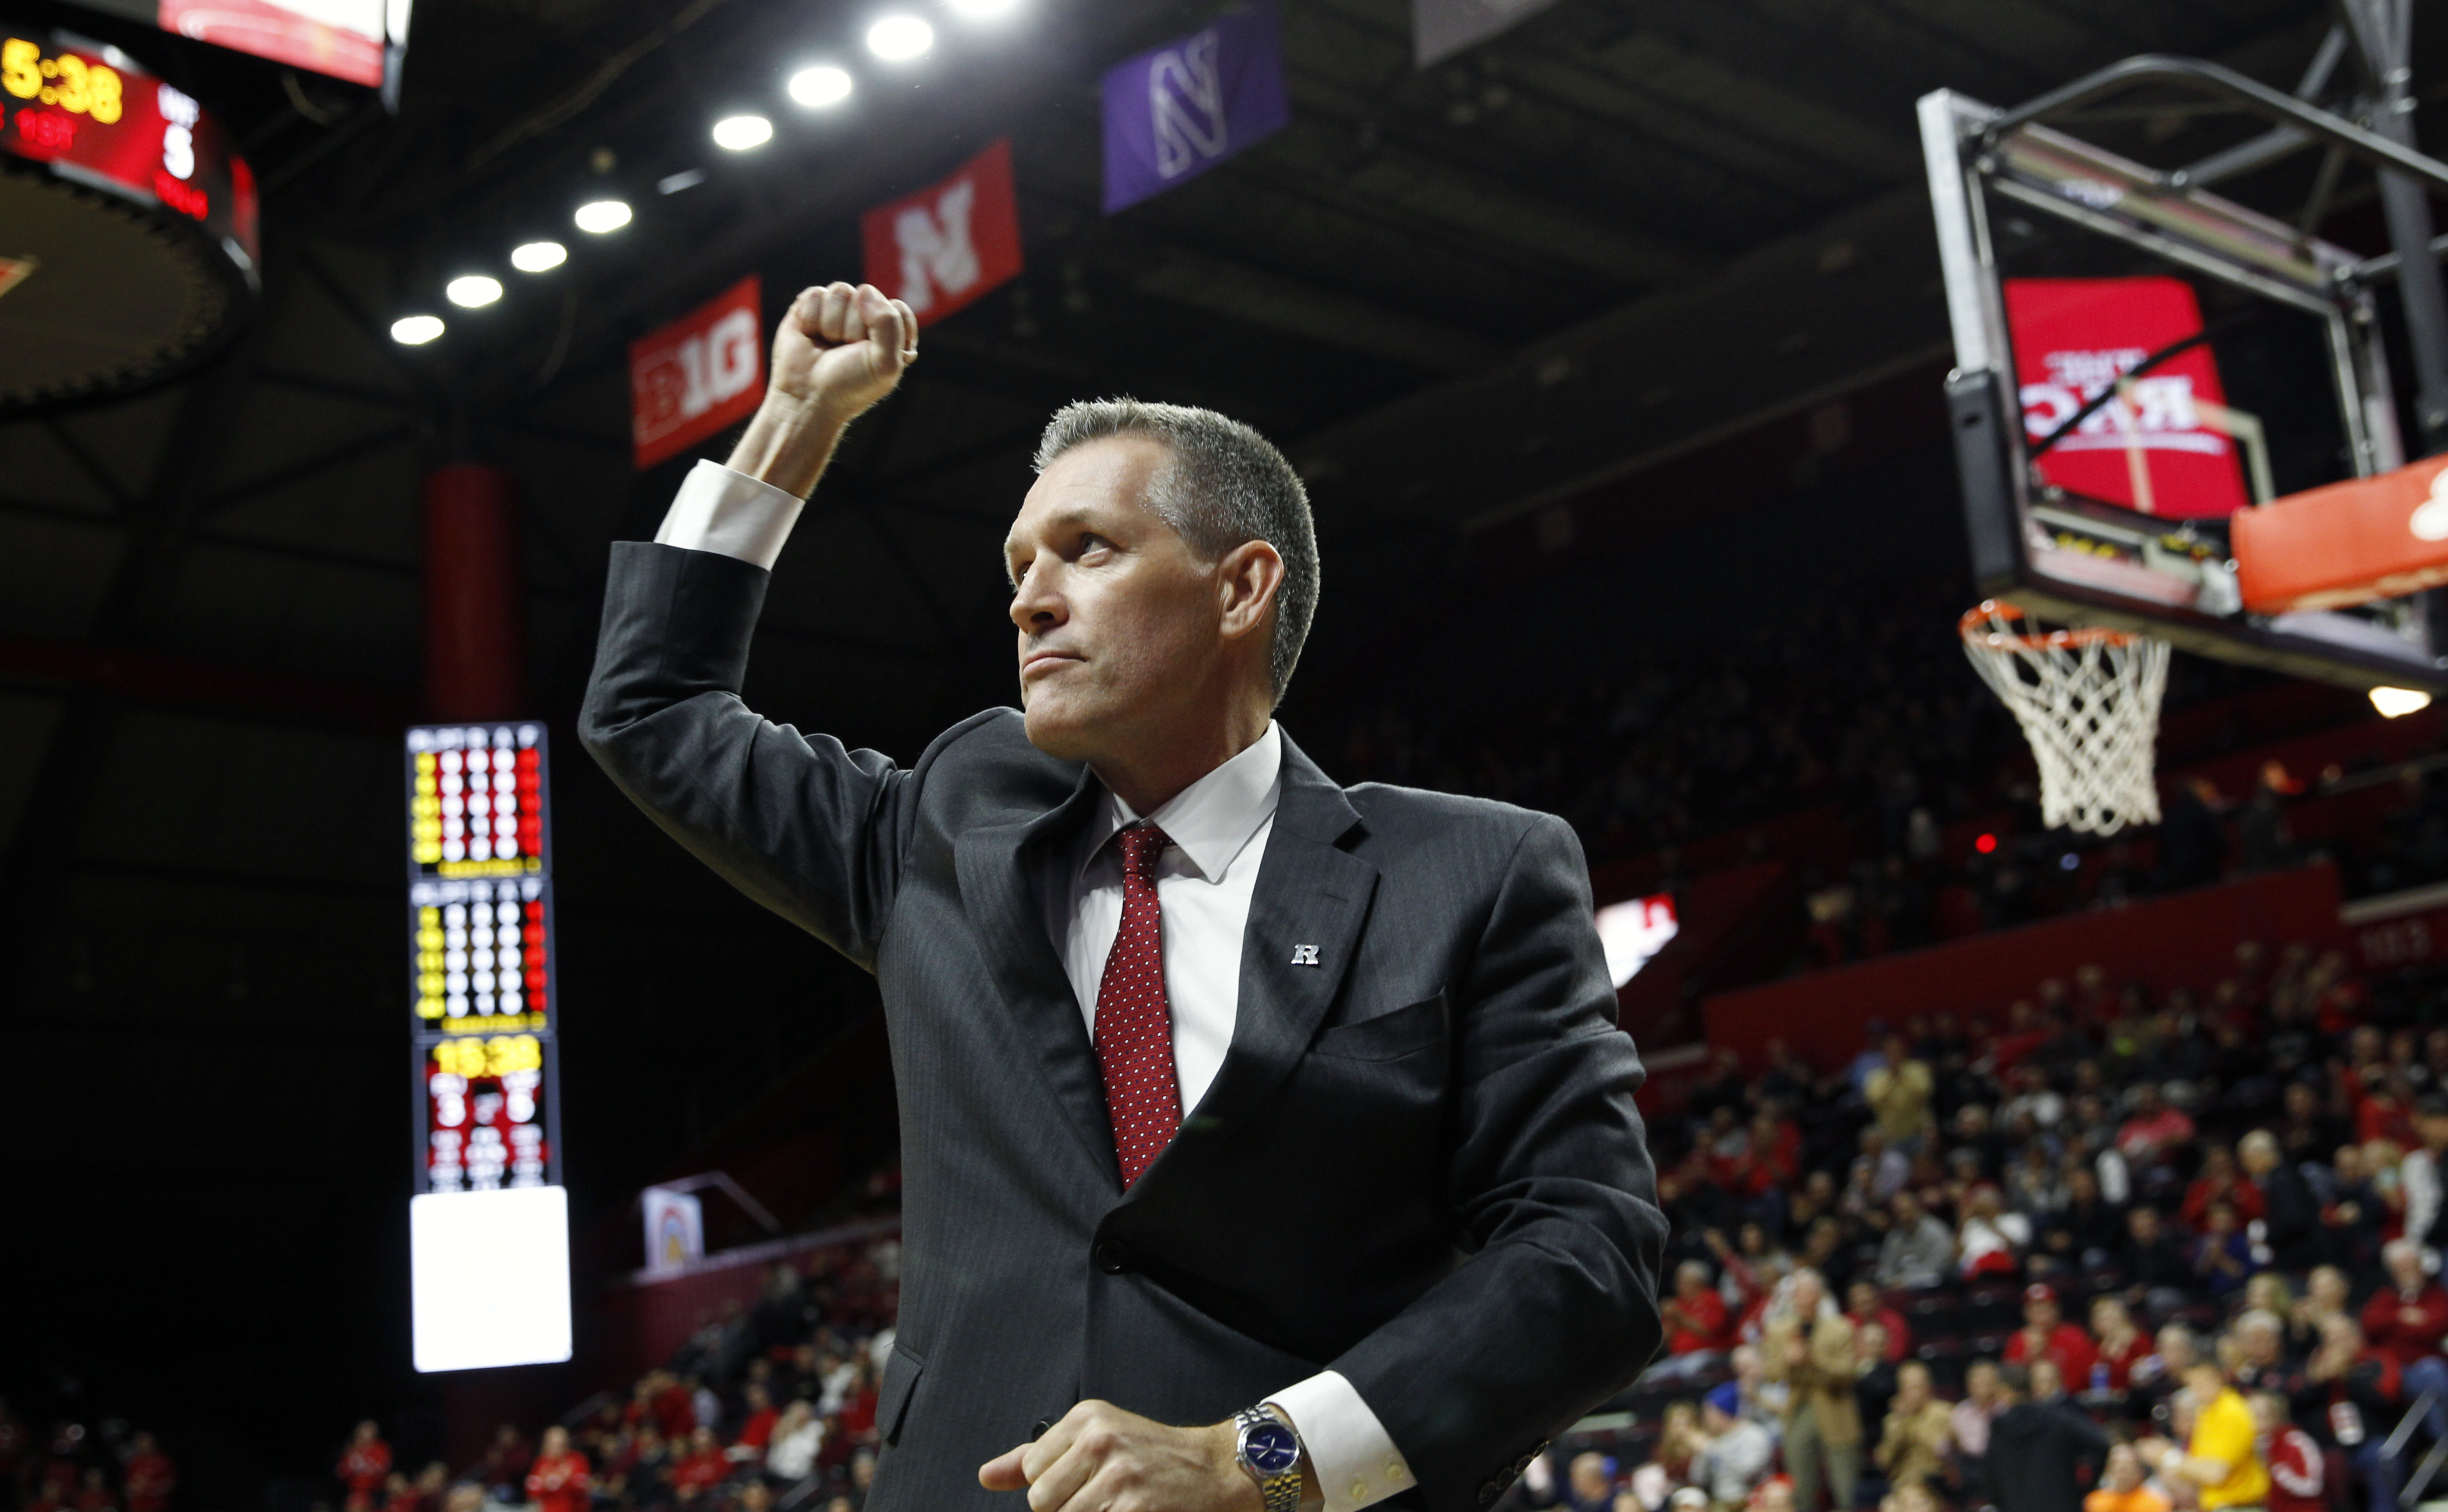 FILE - In this Nov, 30, 2015, file photo, Rutgers new athletic director Patrick Hobbs reacts to the crowd as he stands on the court during an NCAA college basketball game against Wake Forest in Piscataway, N.J. Hobbs is inheriting a program awash in red i